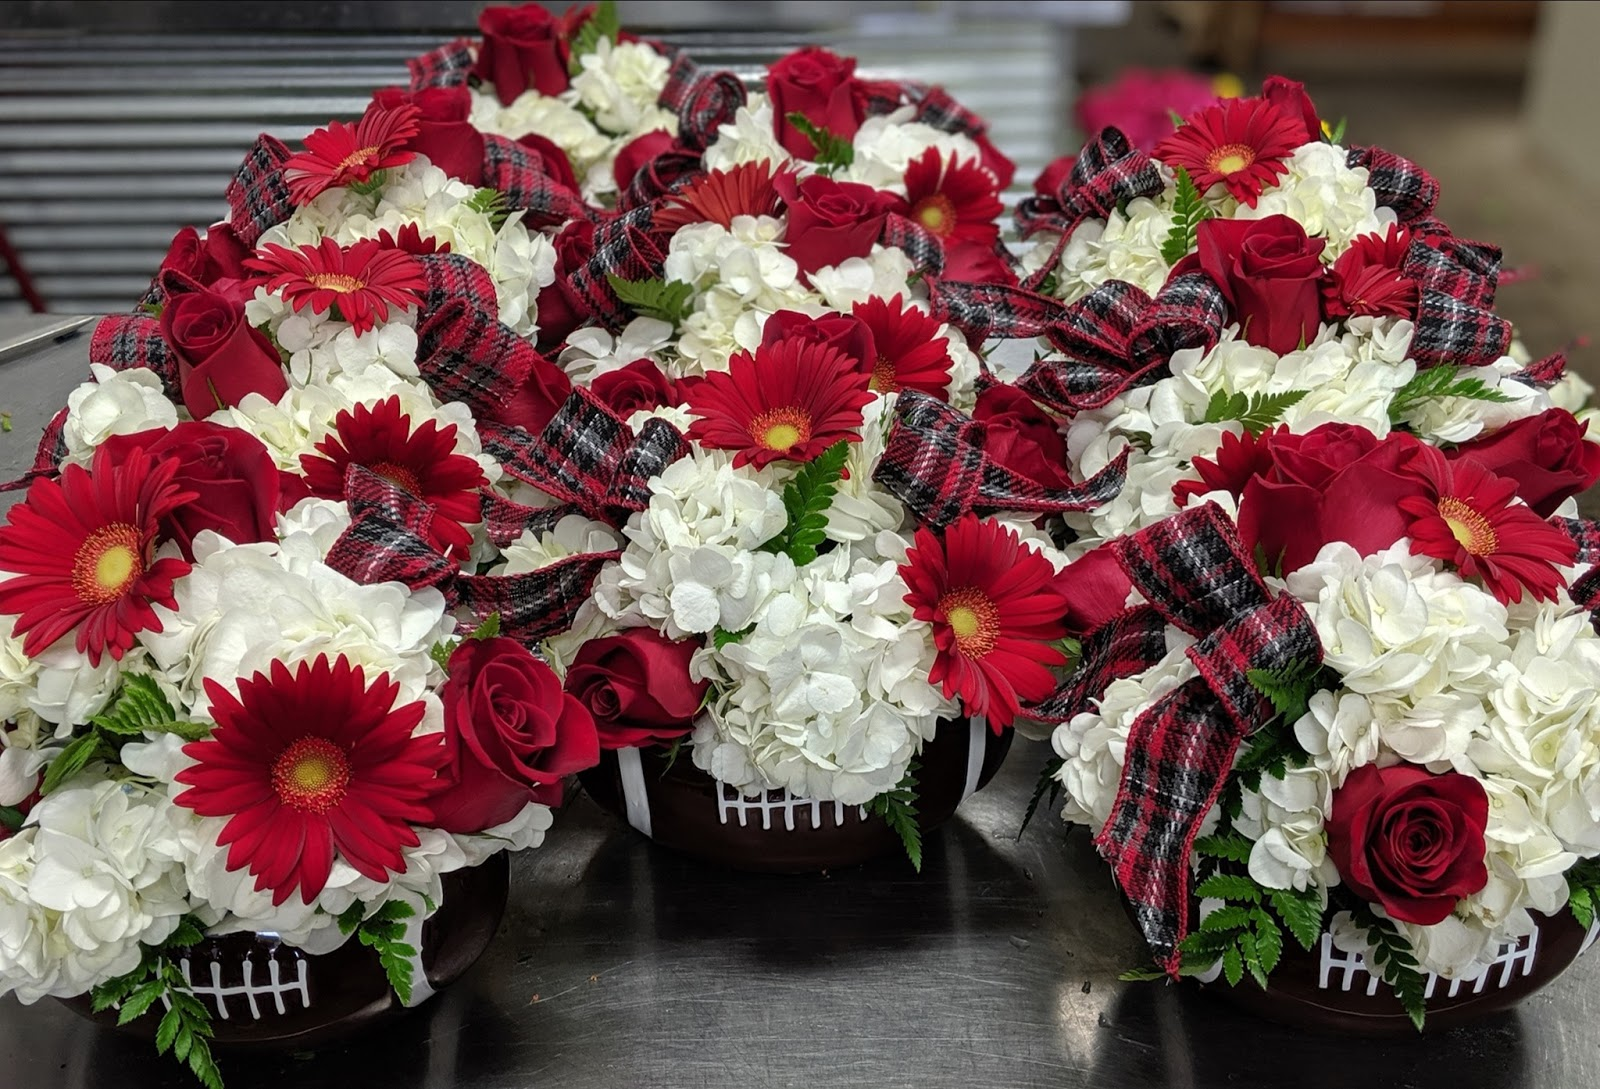 Customized red and white bouquets of flowers potted in small football pots, in the spirit of the Ohio State Buckeye's.